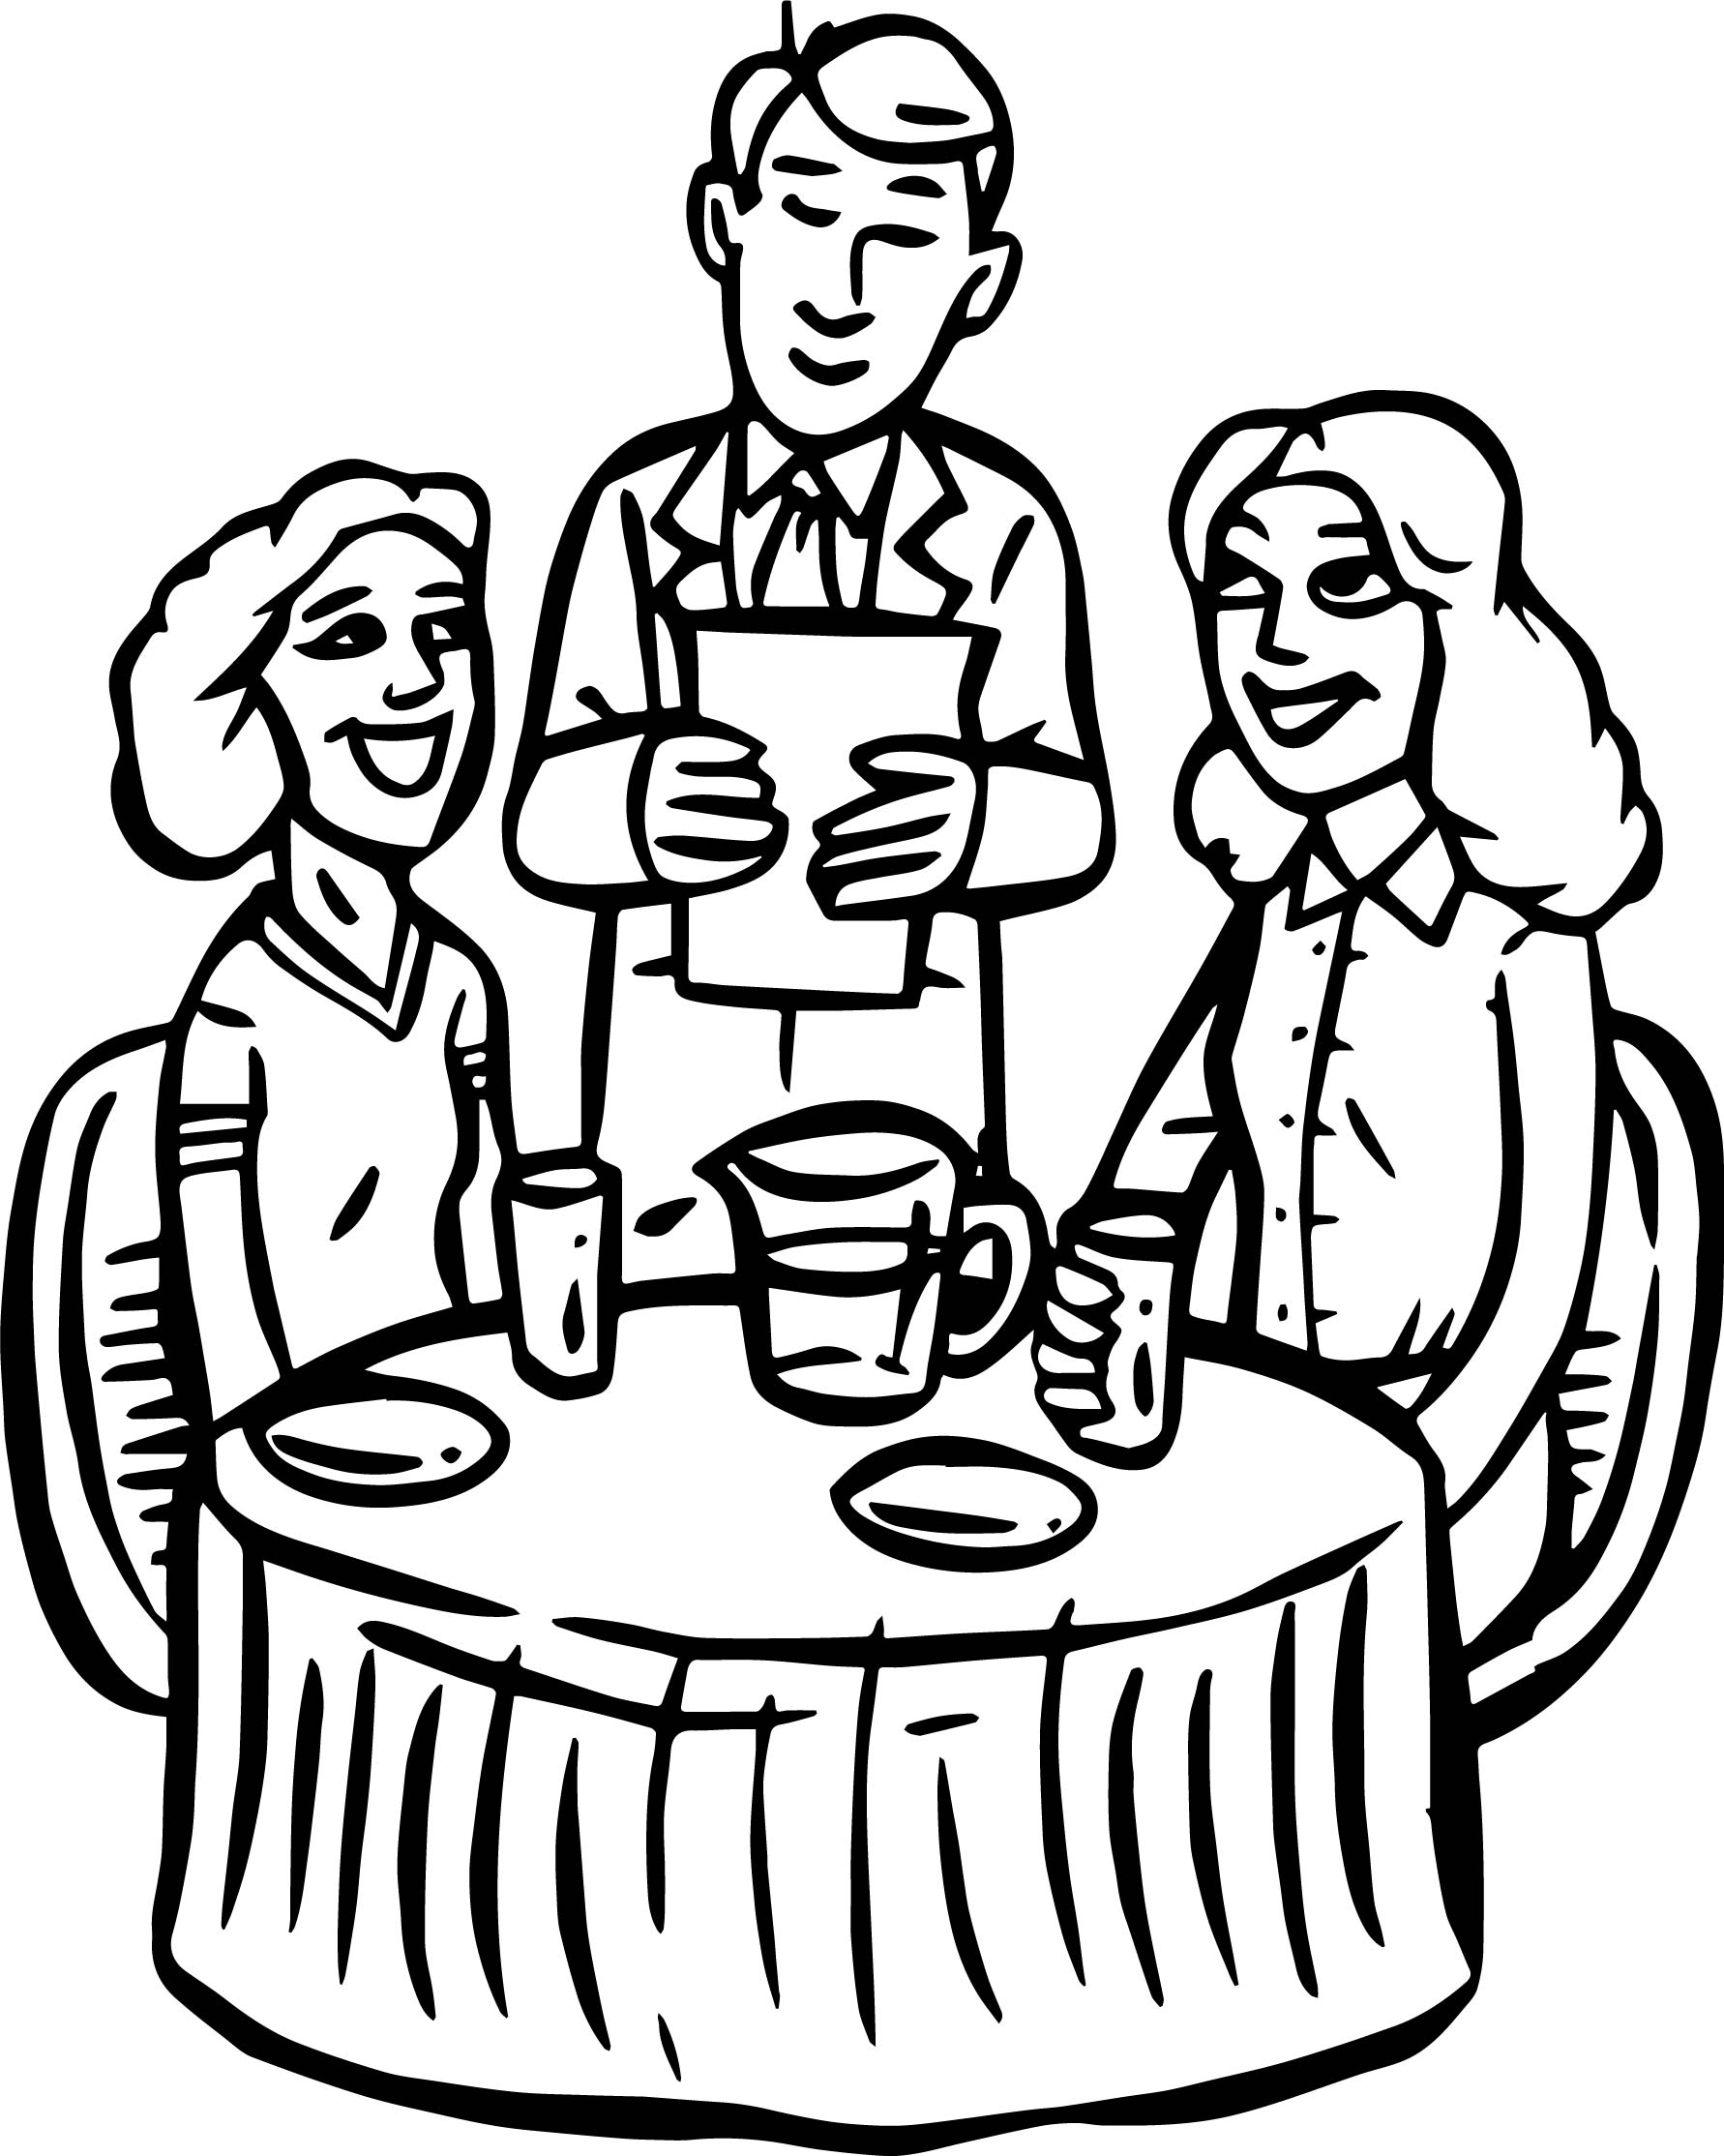 mikes restaurant coloring pages - photo#16